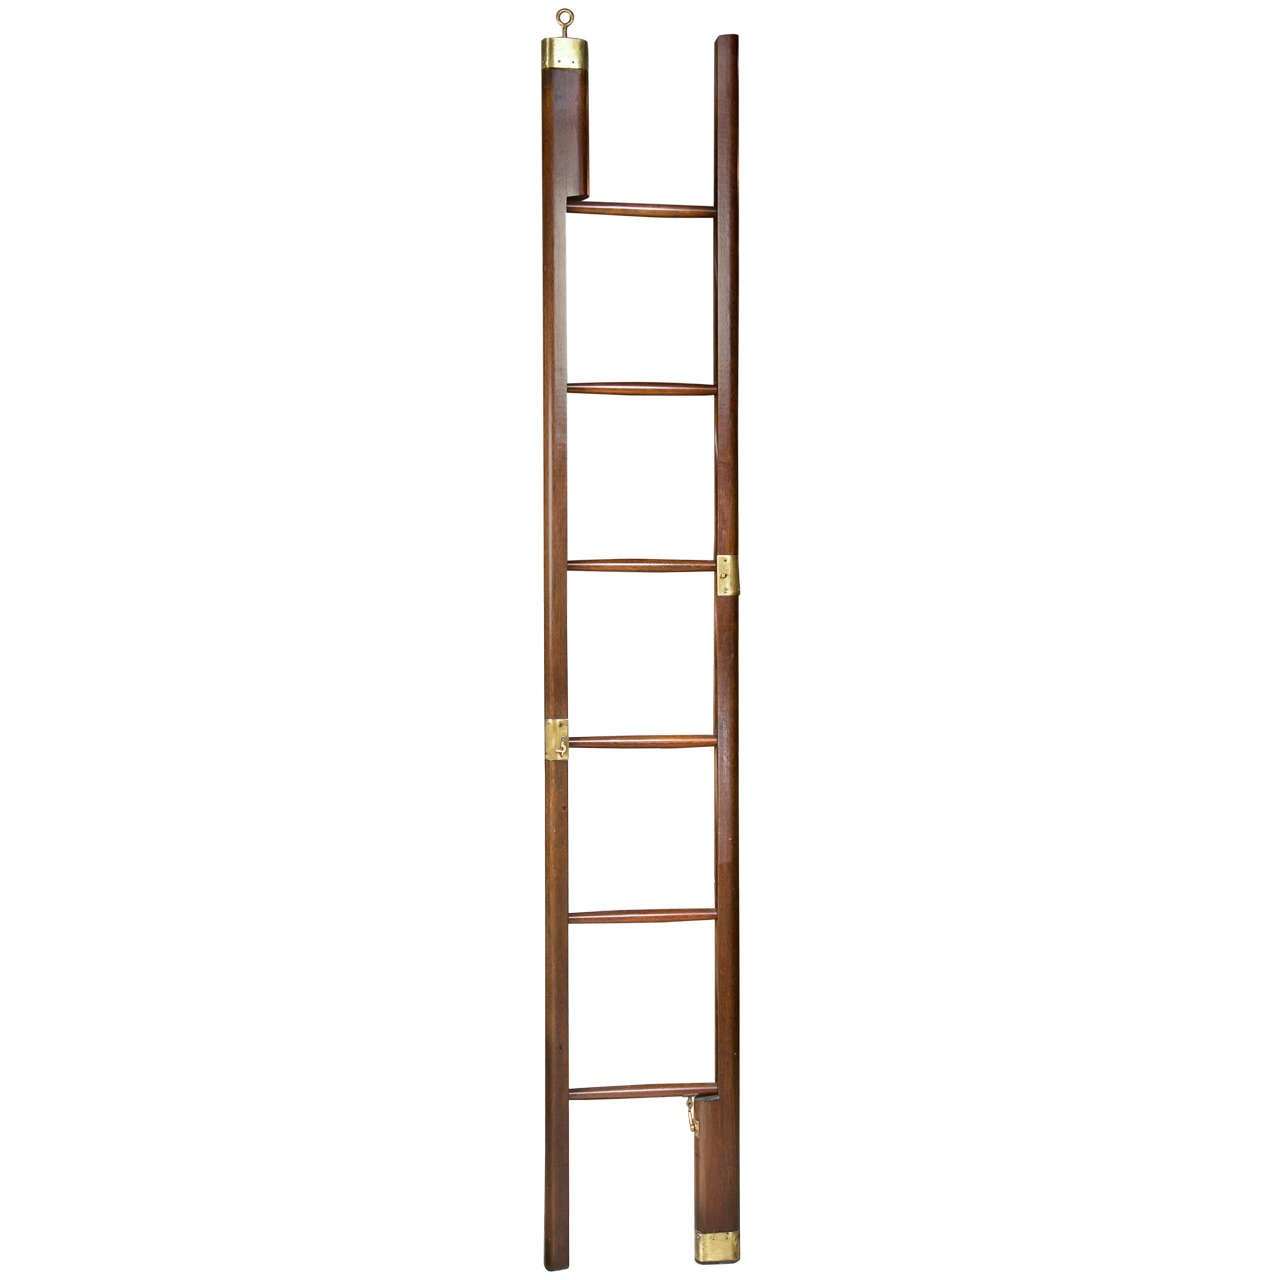 Edwardian Mahogany And Brass Library Pole Ladder At 1stdibs